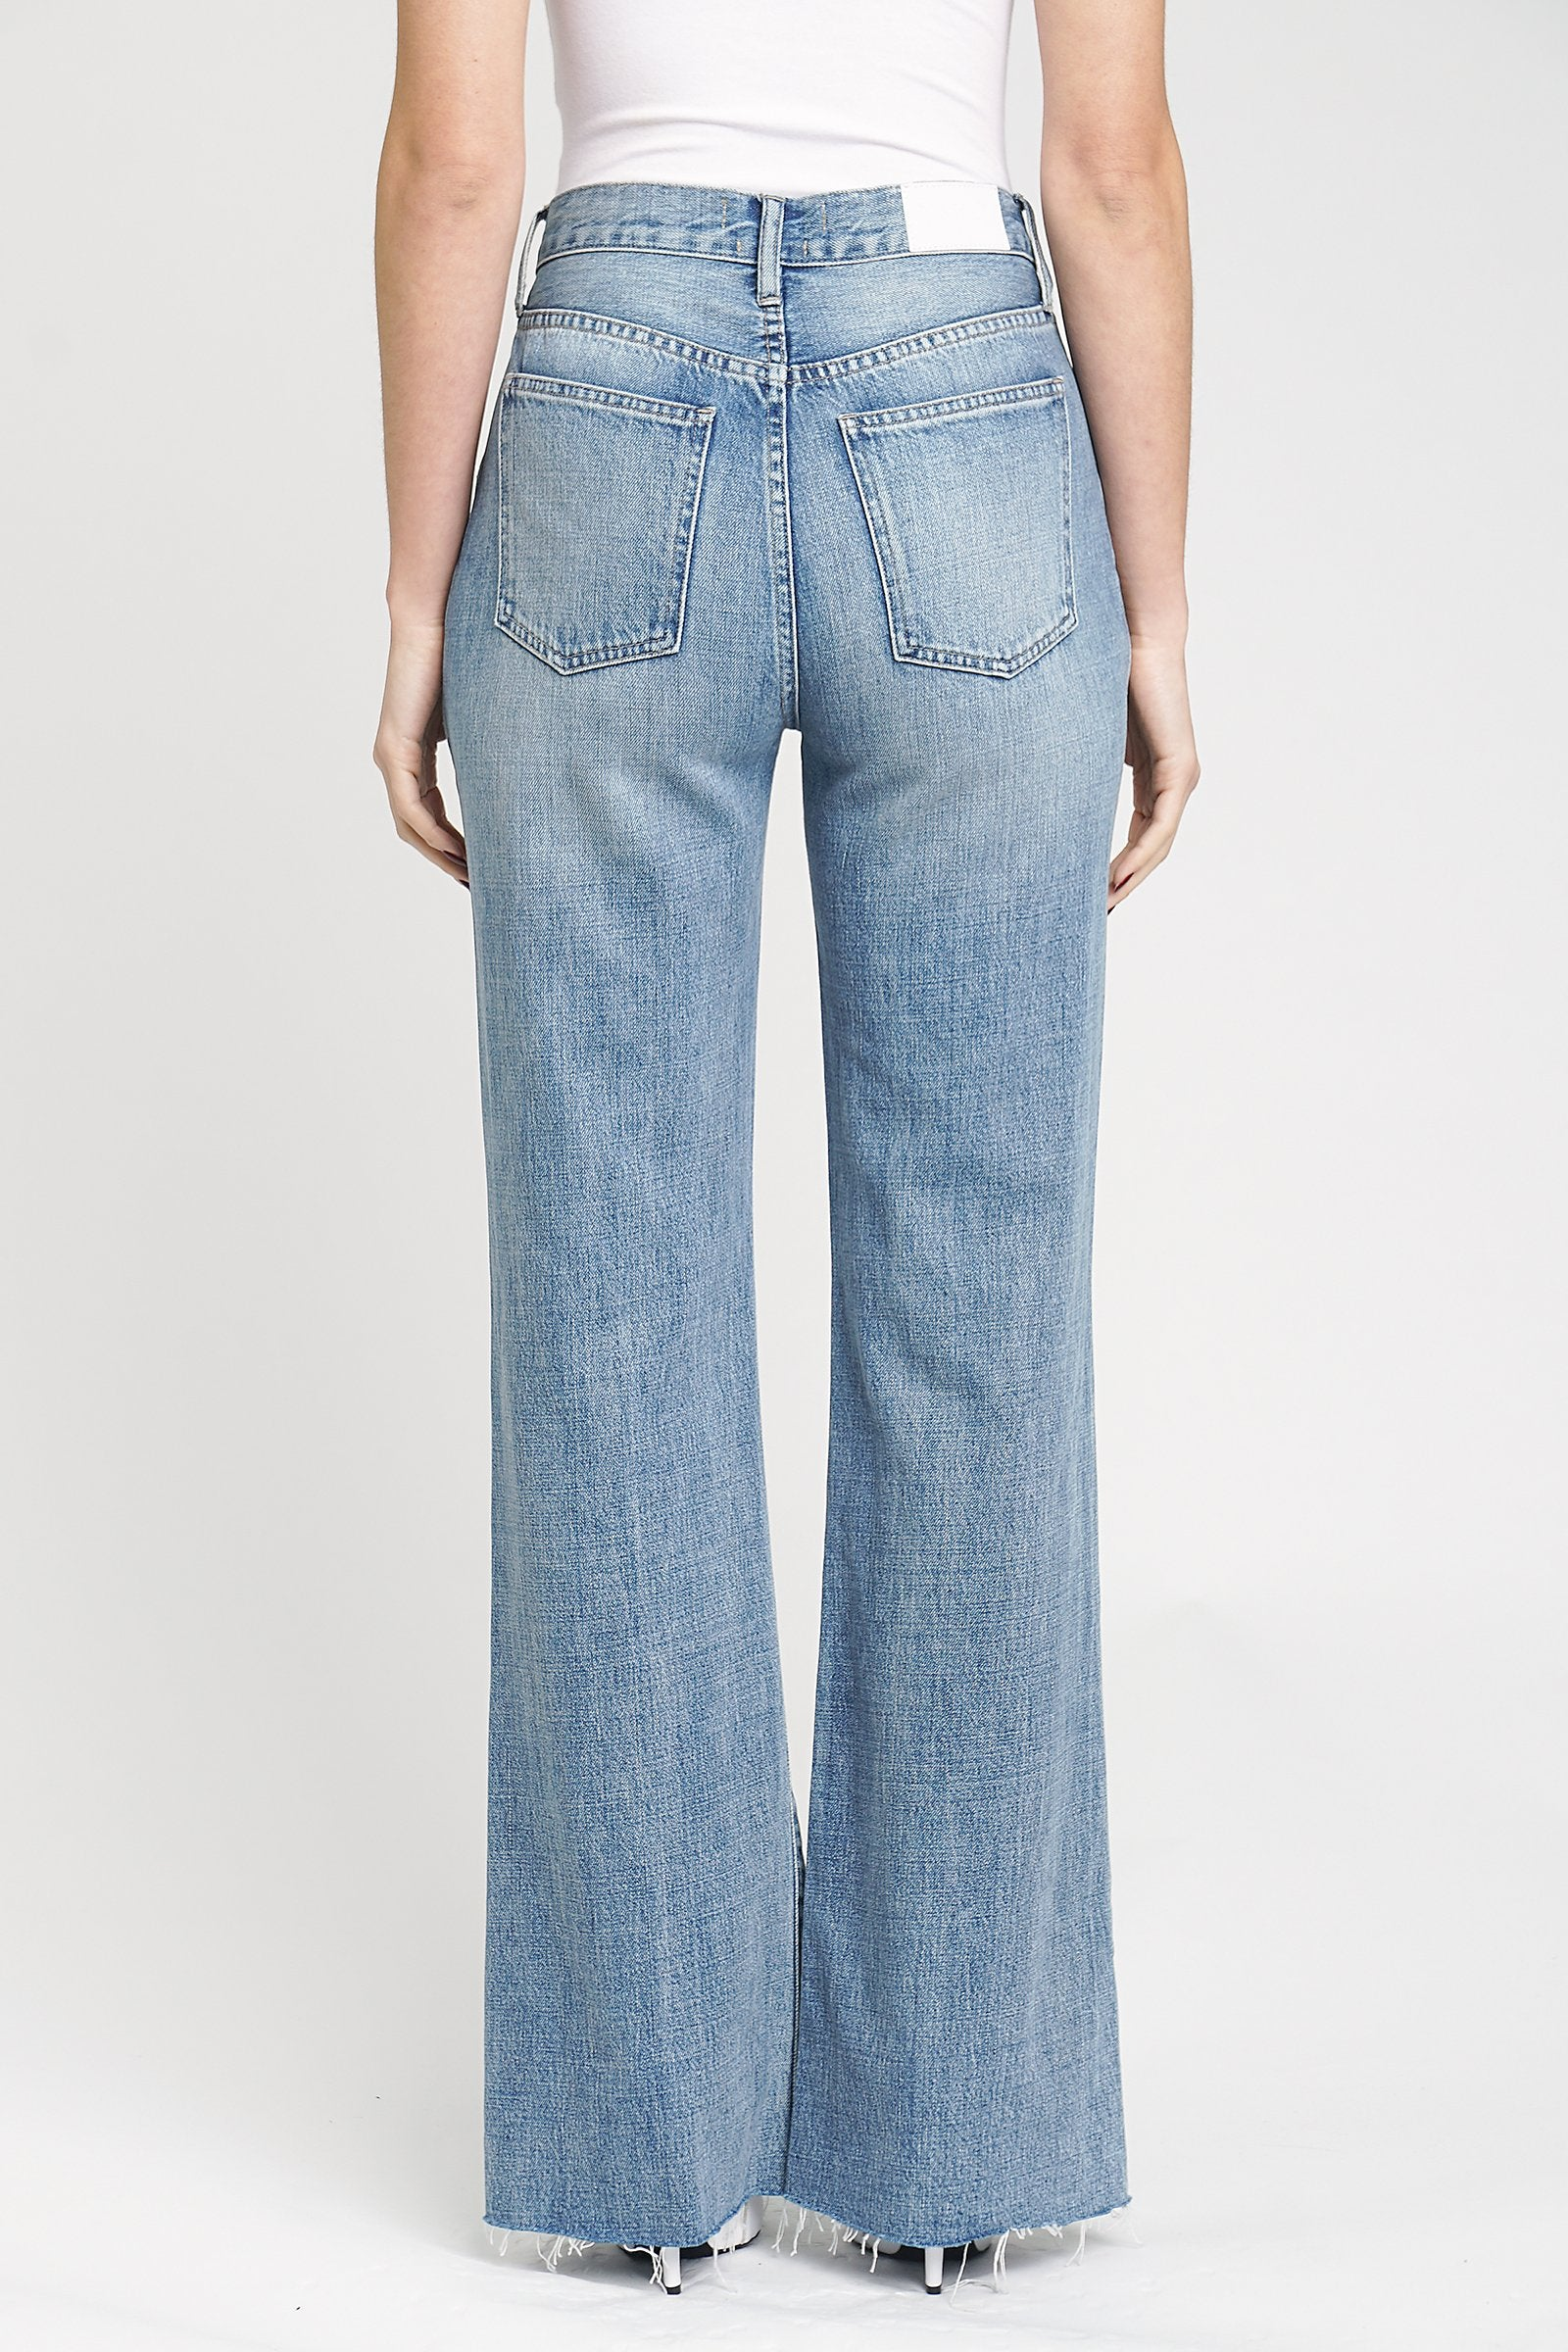 Pistola Stevie High Rise Wide Leg Jean